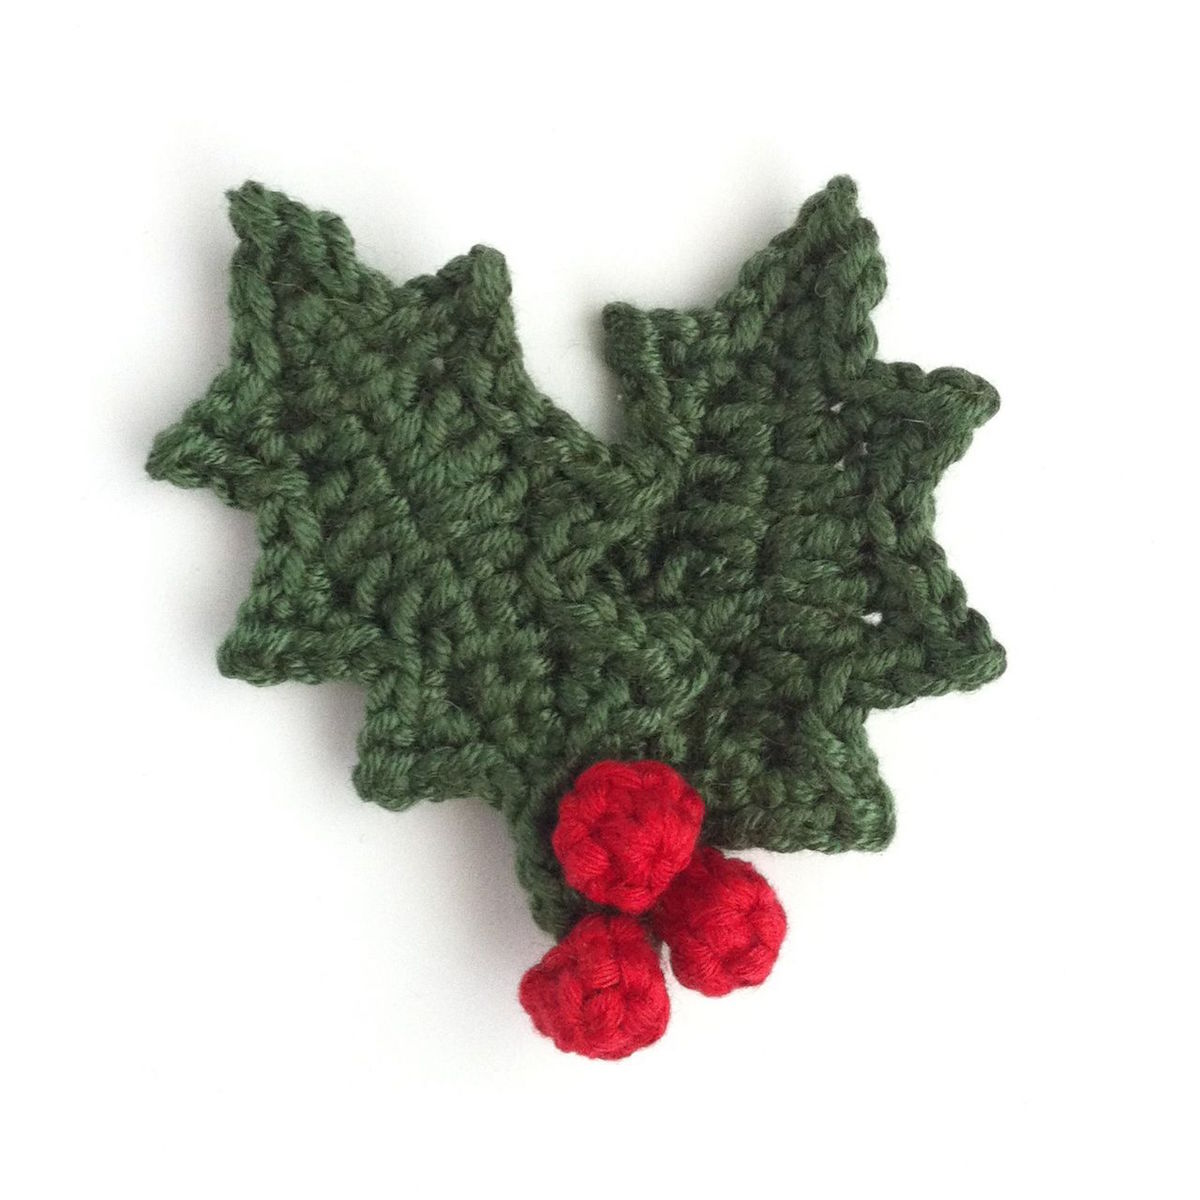 Hand-crocheted holly leaf brooch